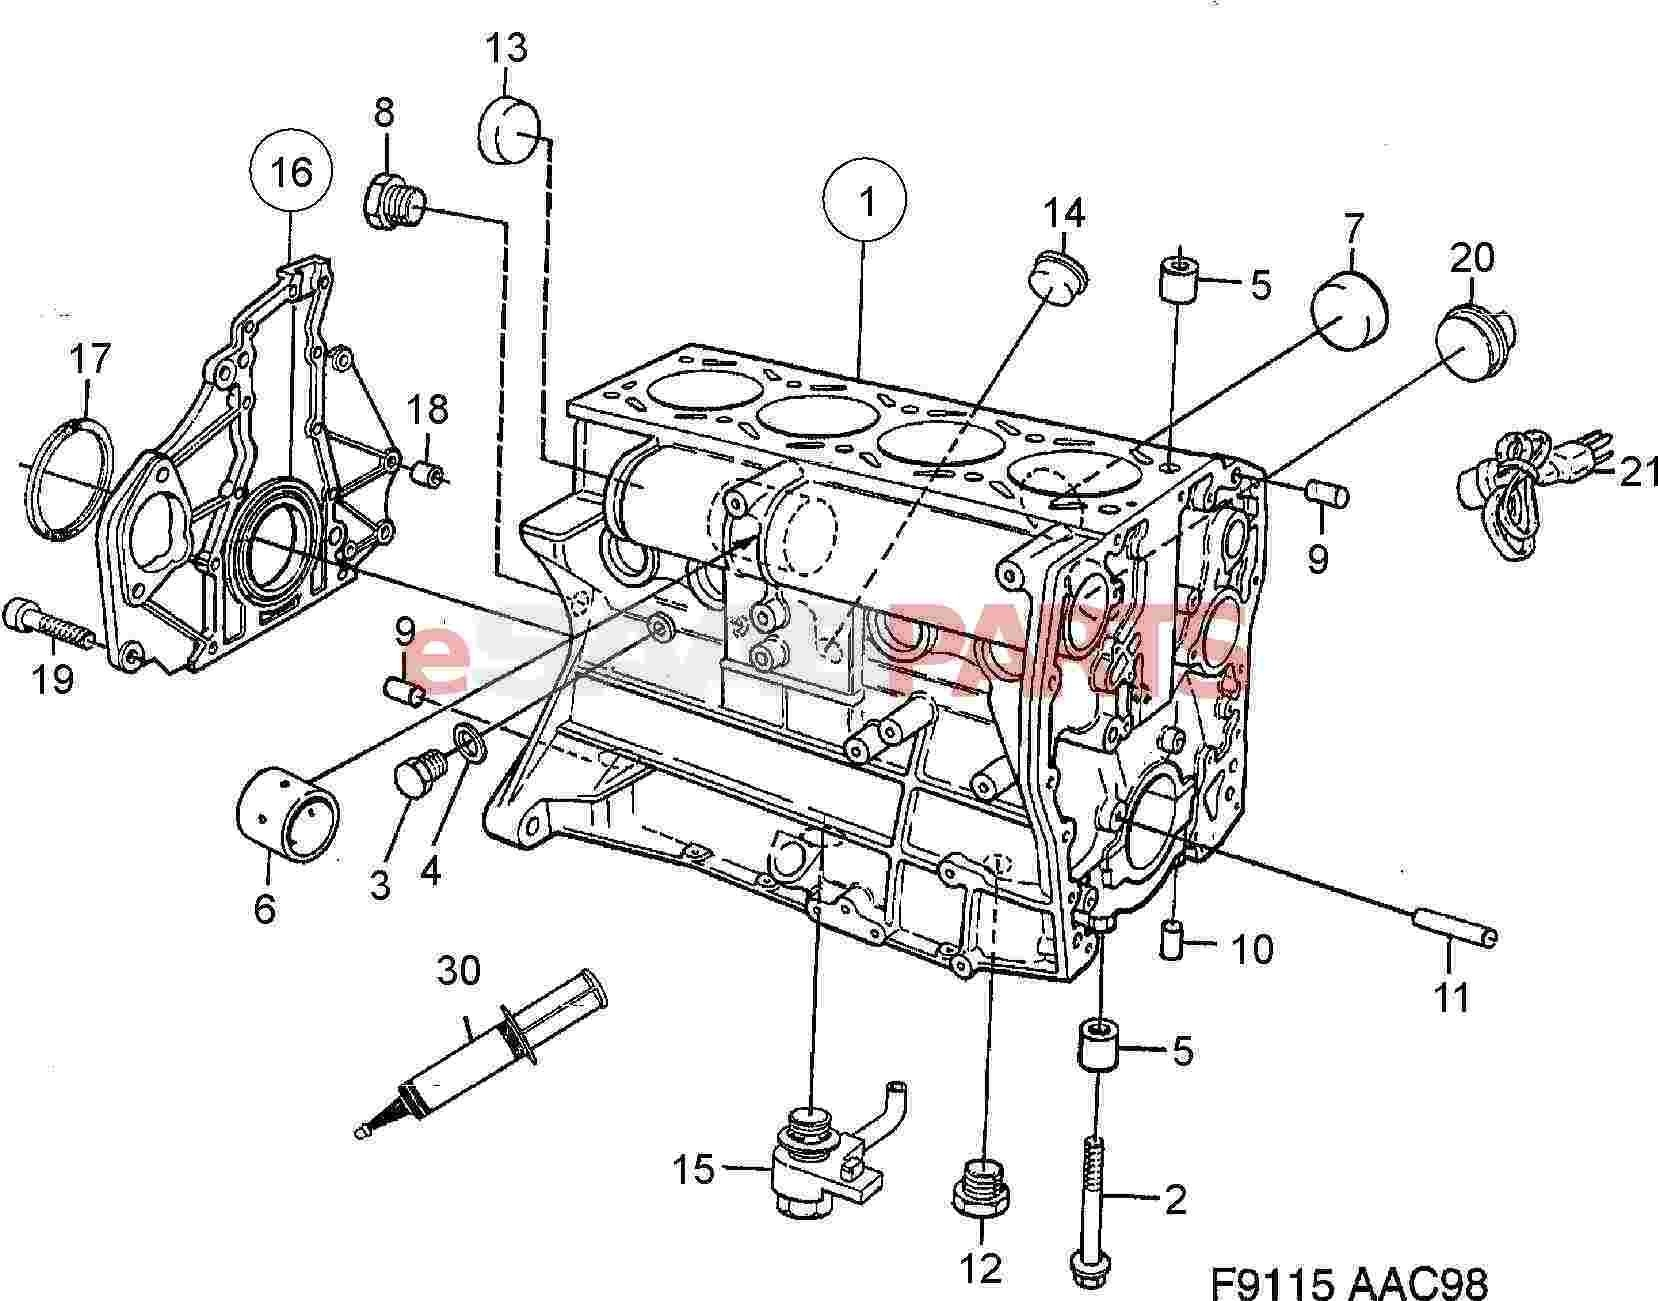 hight resolution of 1993 saab 900 engine diagram example electrical wiring diagram u2022 saab 9 3 convertible